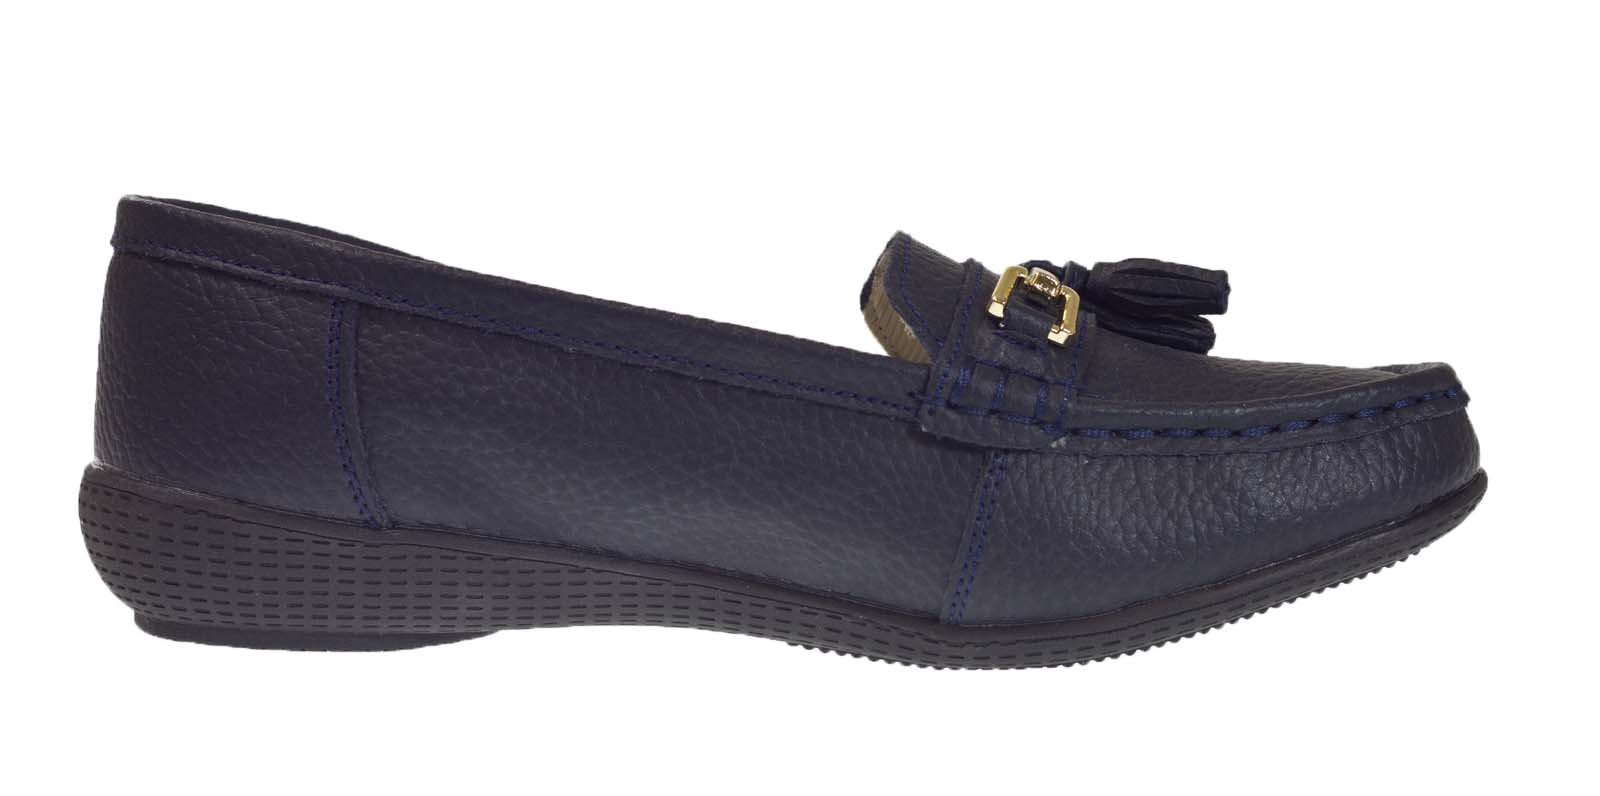 Ladies Driving Moccasin Shoes Size